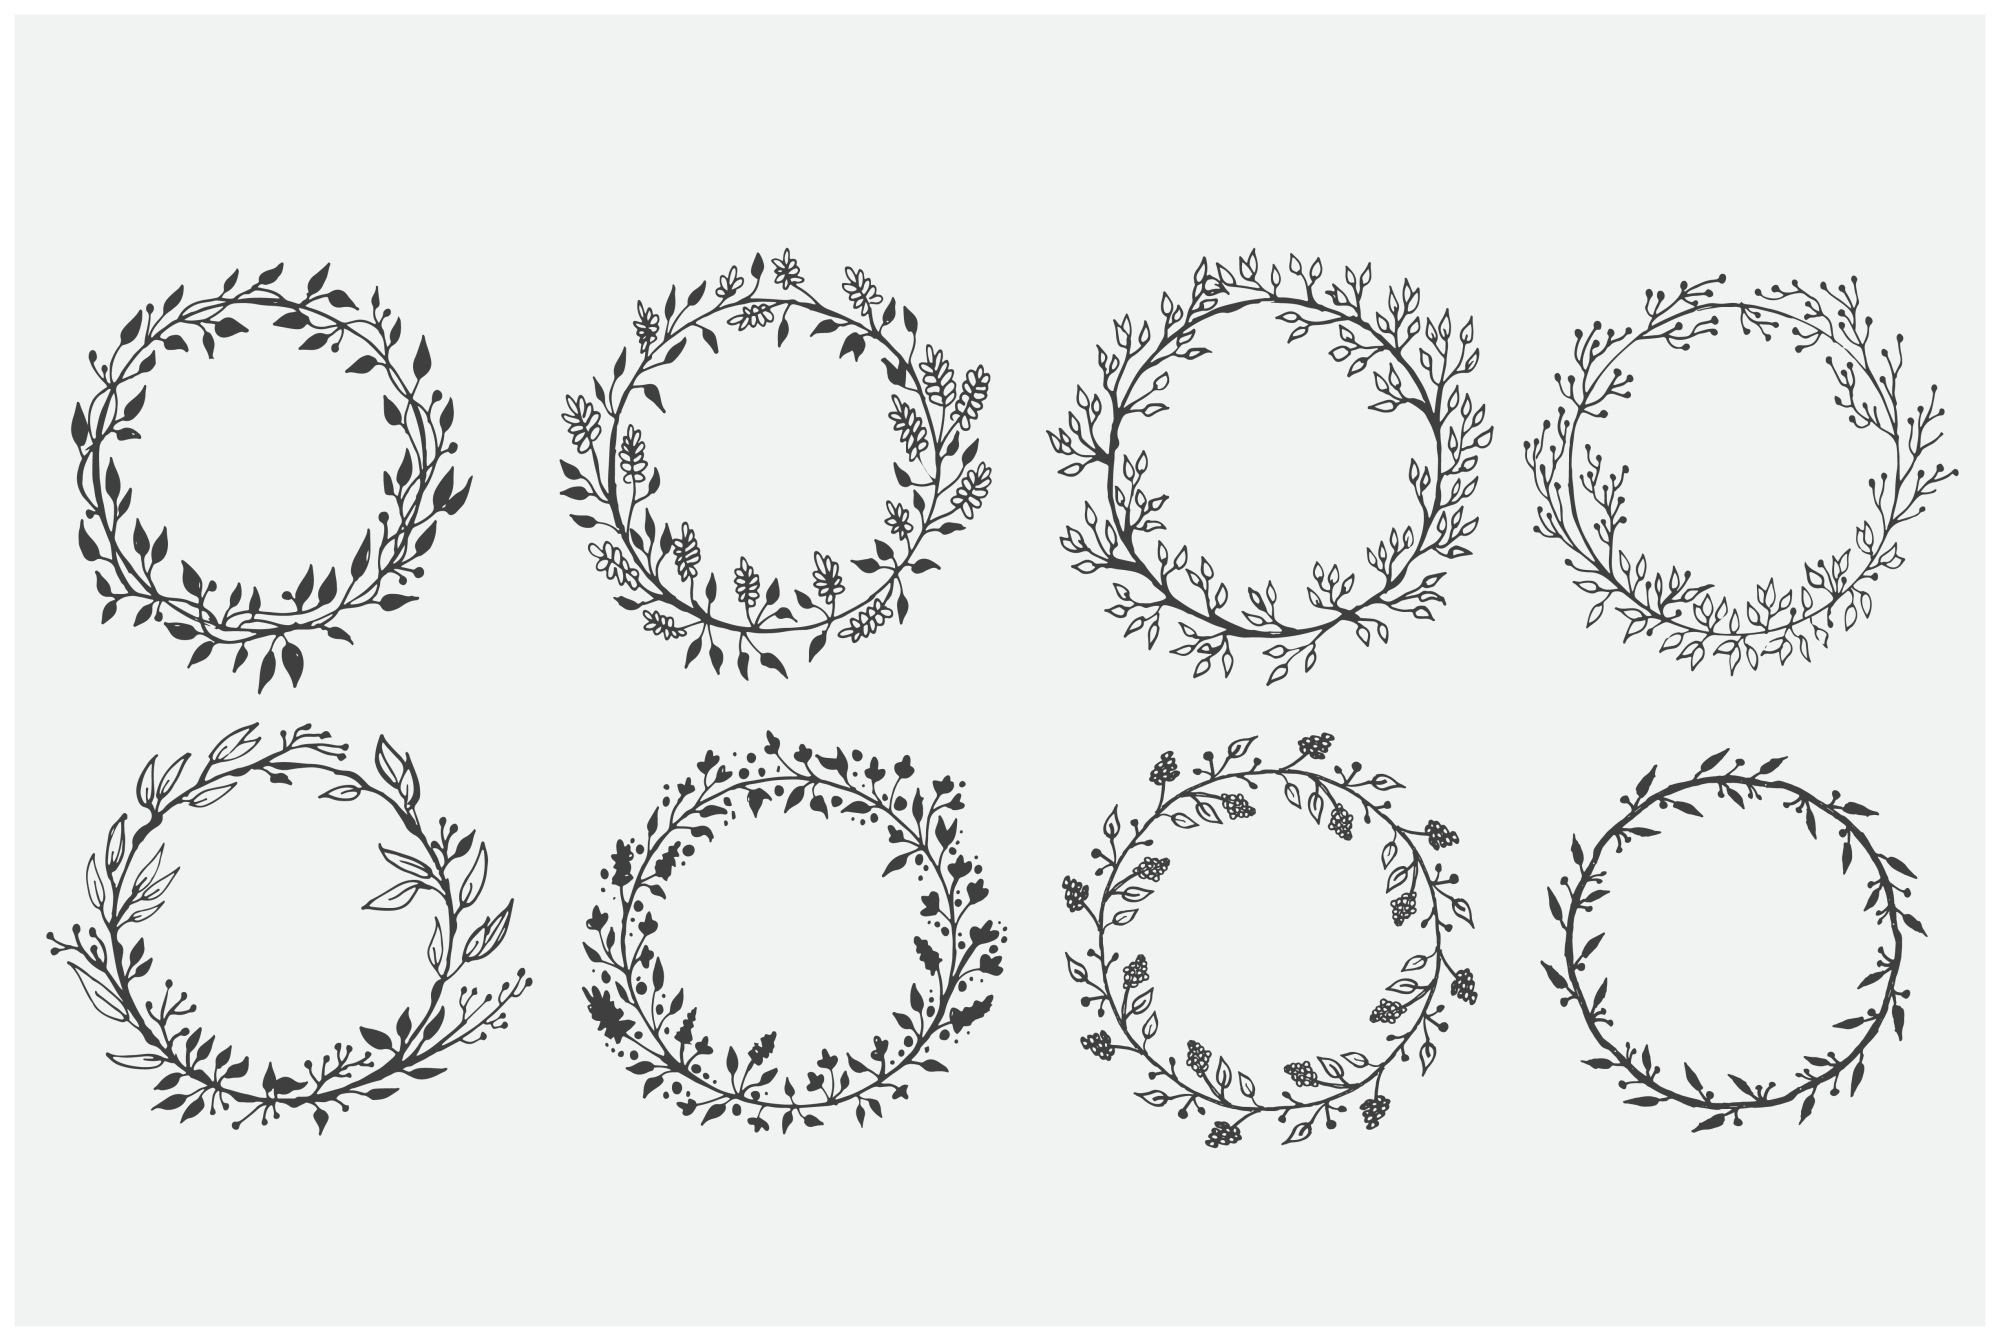 Hand Drawn Wreaths for Crafters Vol 1 example image 2